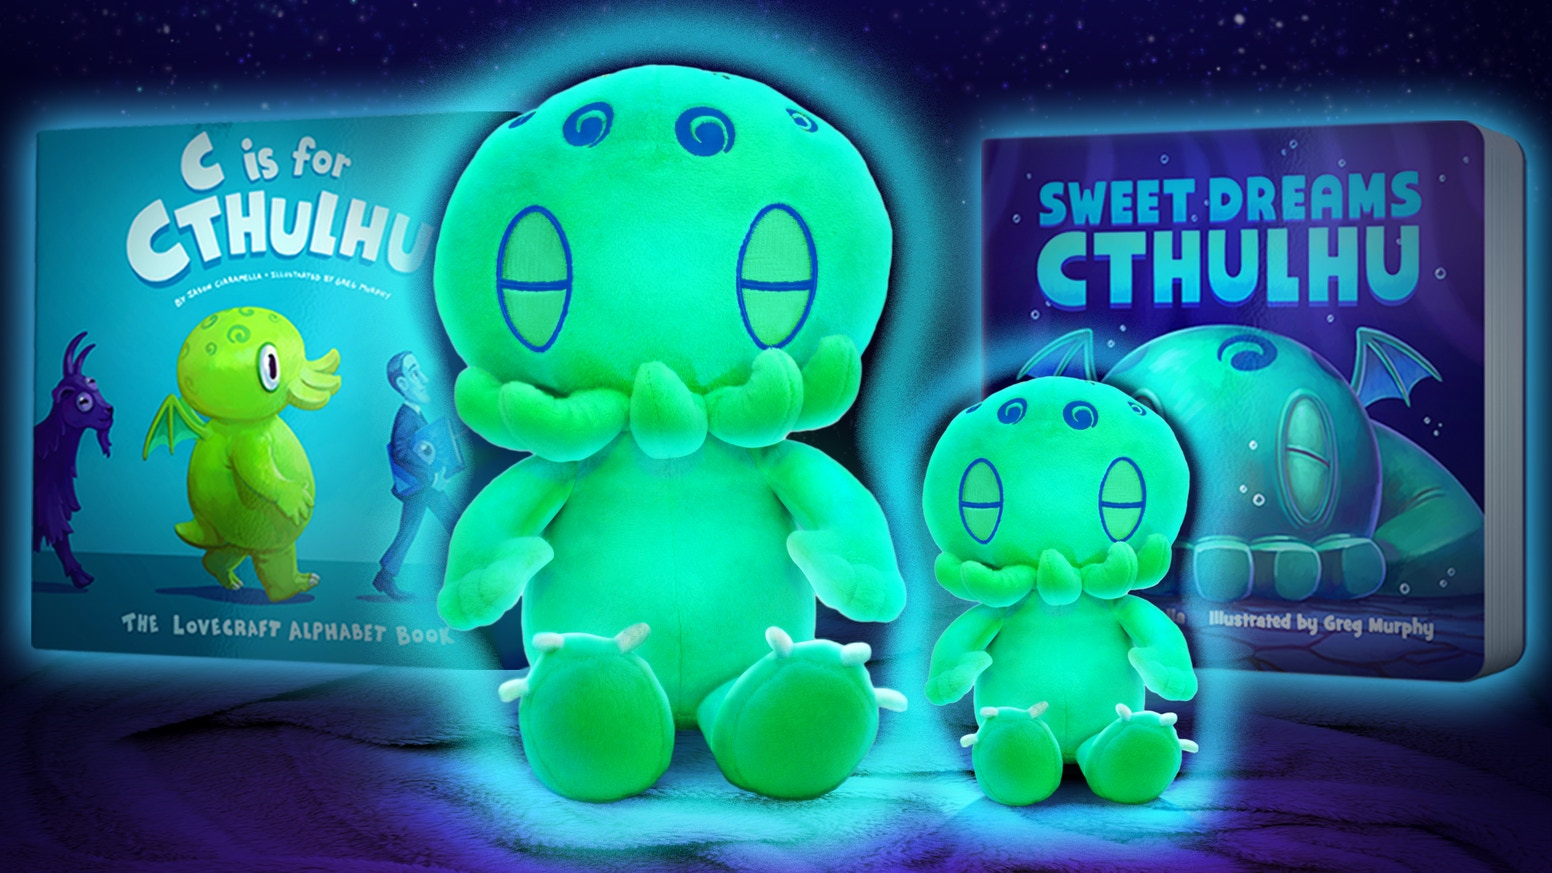 Finally, cute and cuddly Cthulhu plush toys that GLOW IN THE DARK! Snuggle up while you read our Lovecraft-inspired children's books!